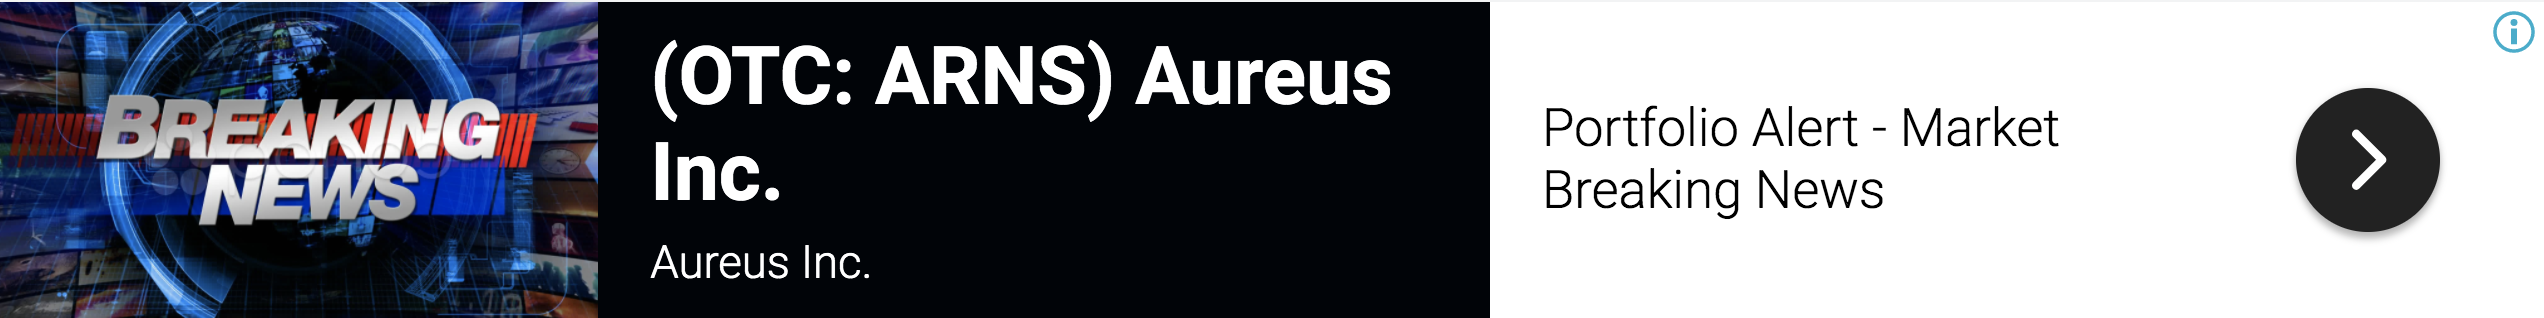 stock market news, aureus inc receives initial order of equipment for 1 6614115802459480